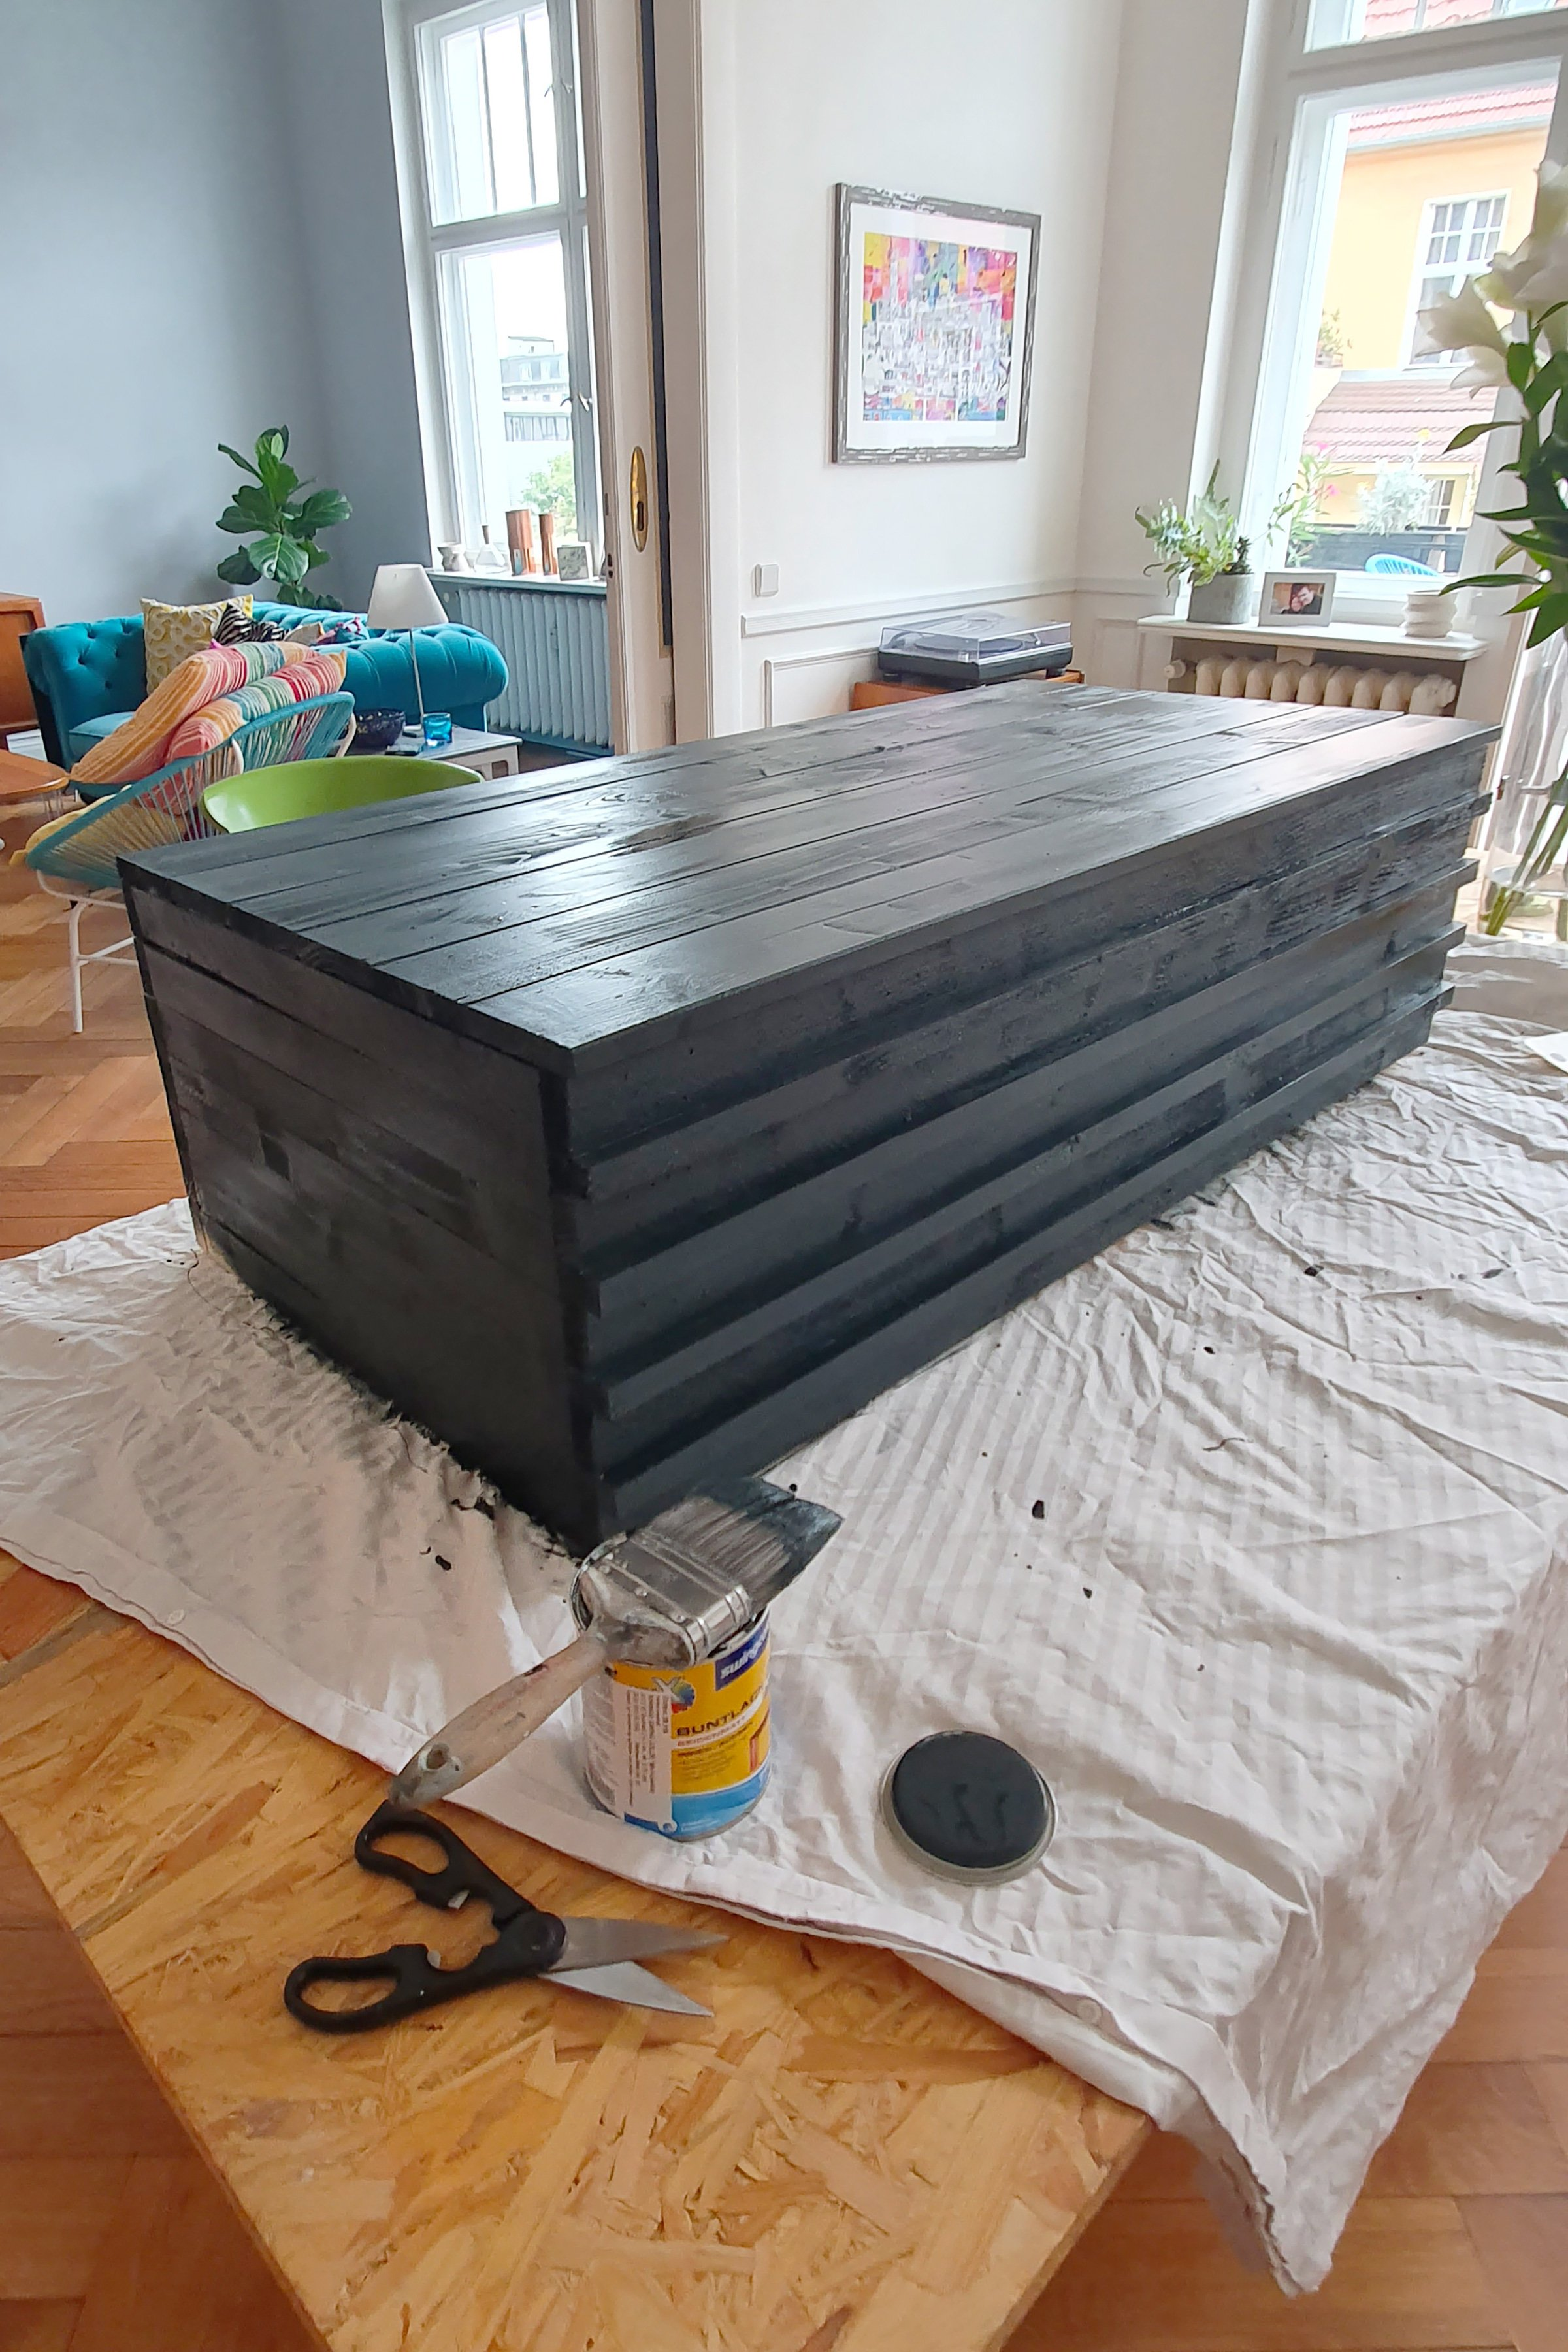 DIY Garden Bench With Hidden Storage - Painting | Little House On The Corner